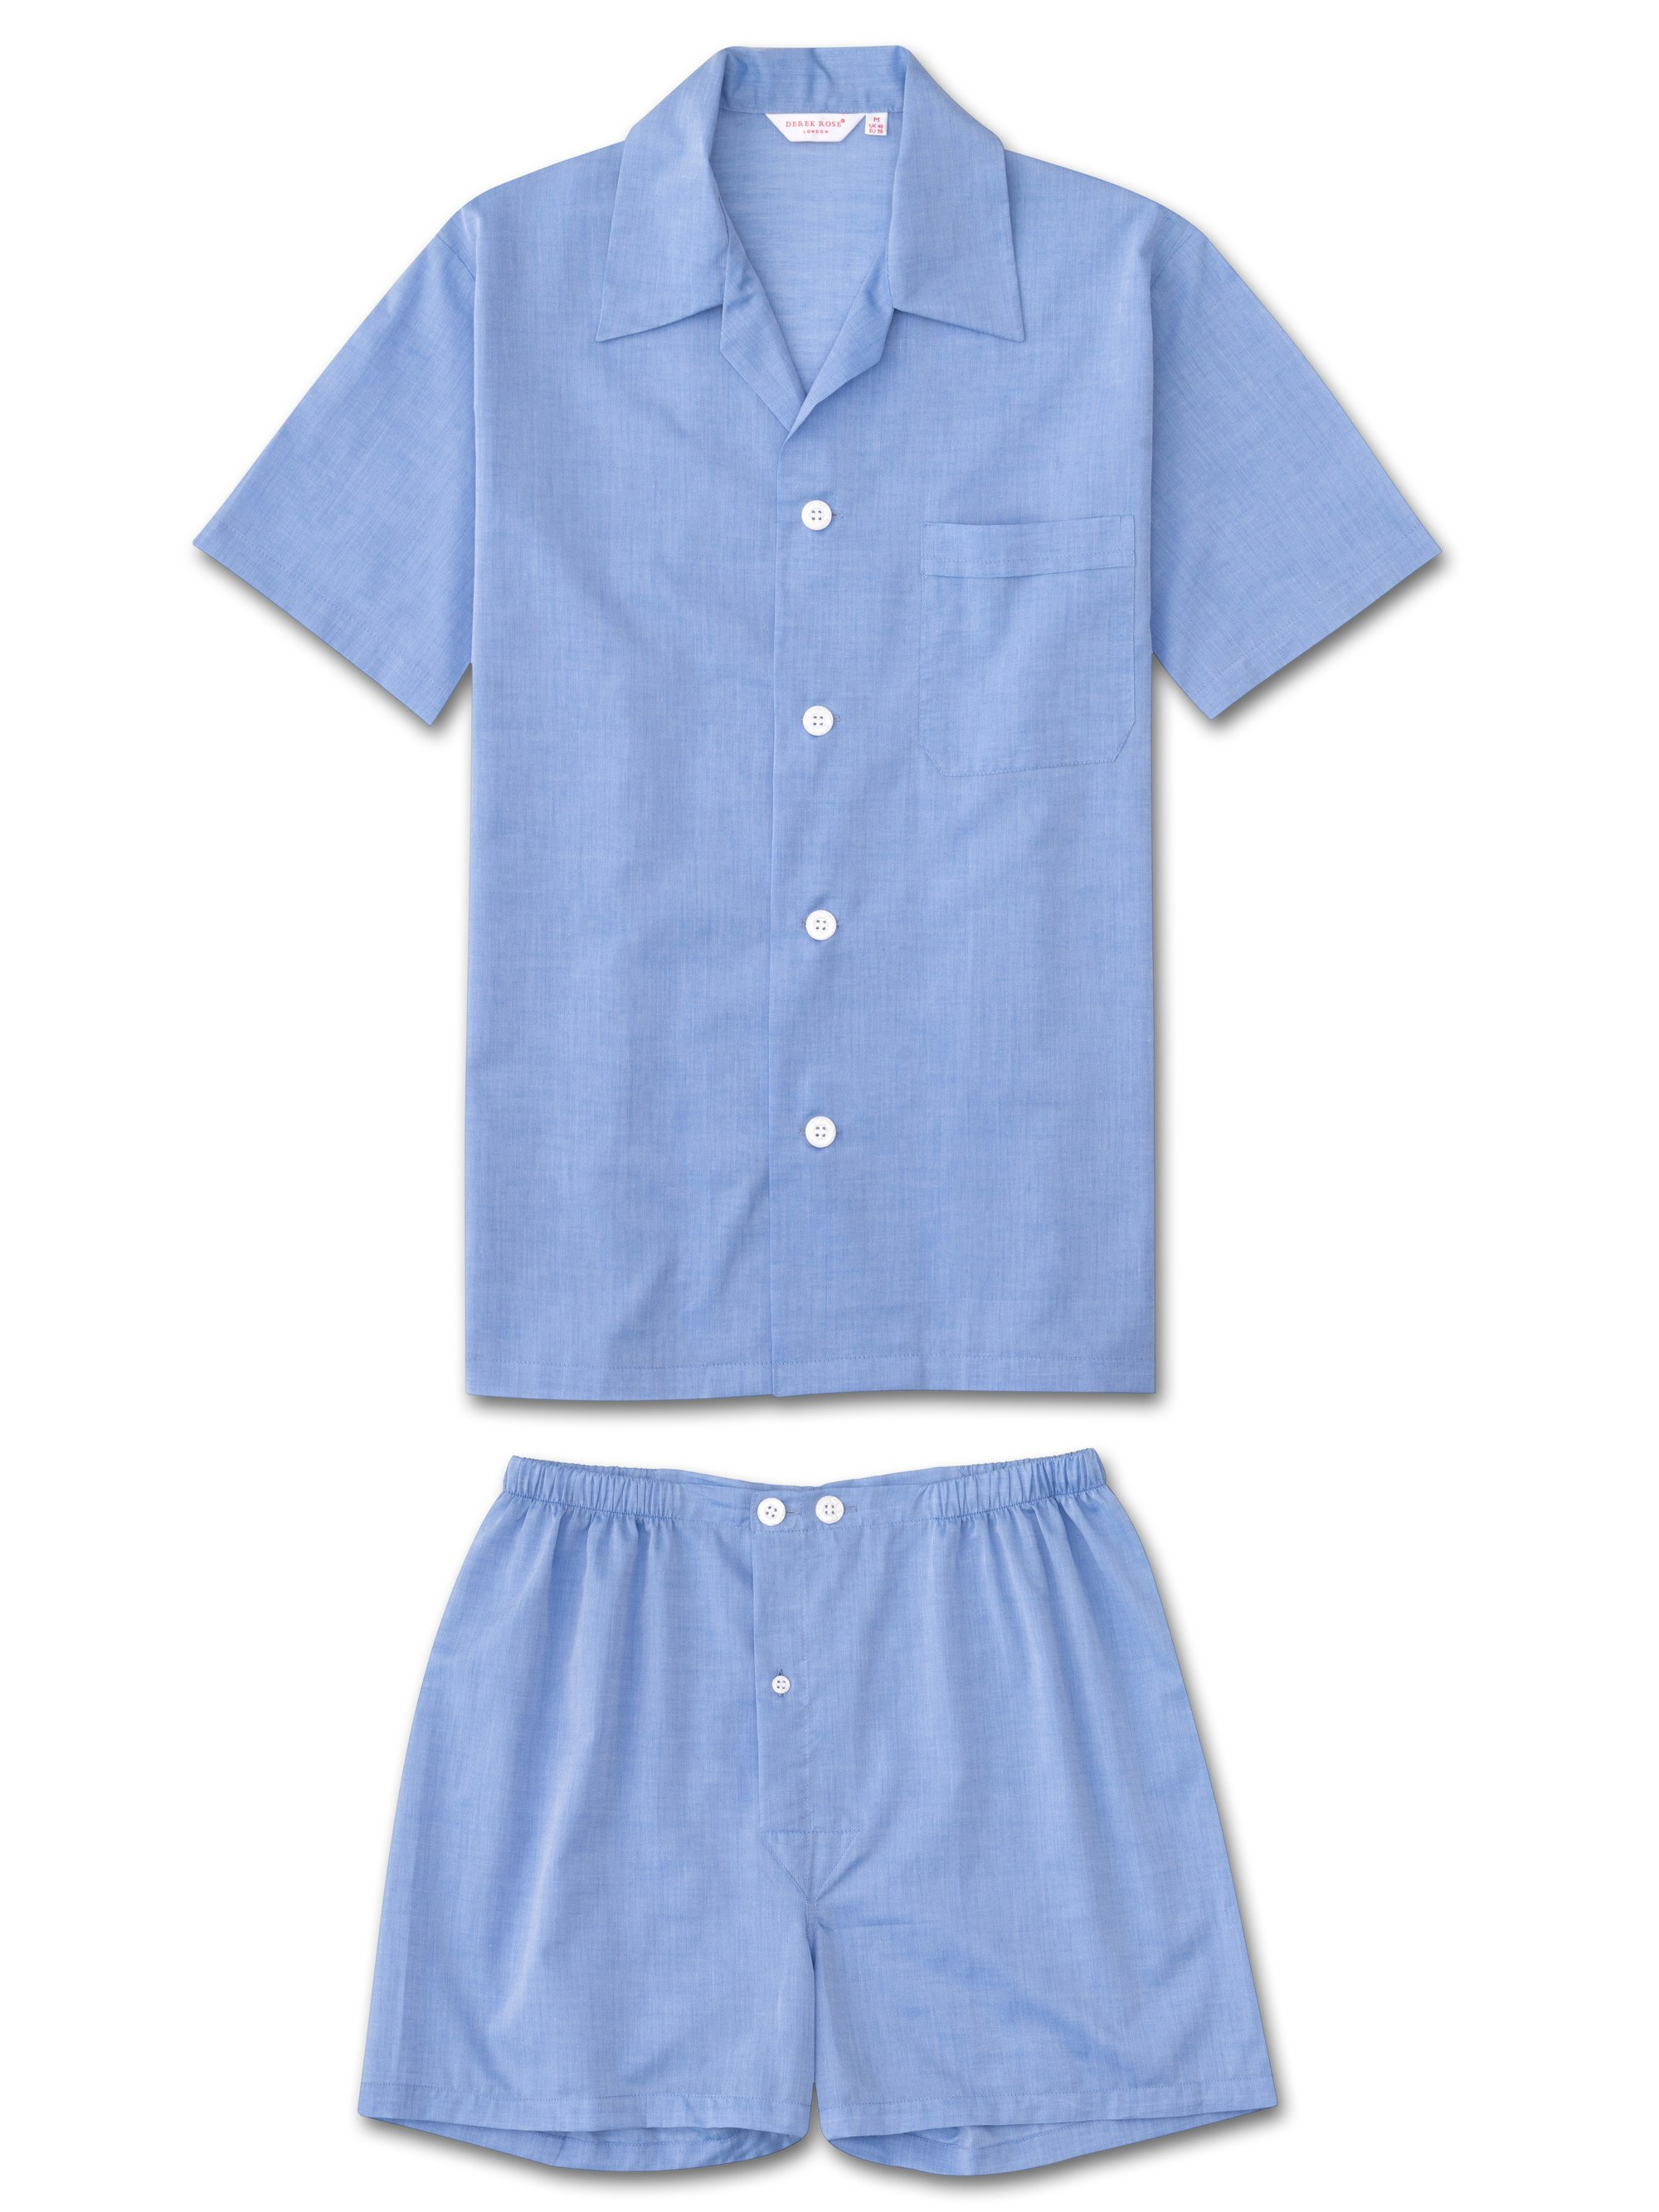 Men's Short Pyjamas Amalfi Cotton Batiste Blue